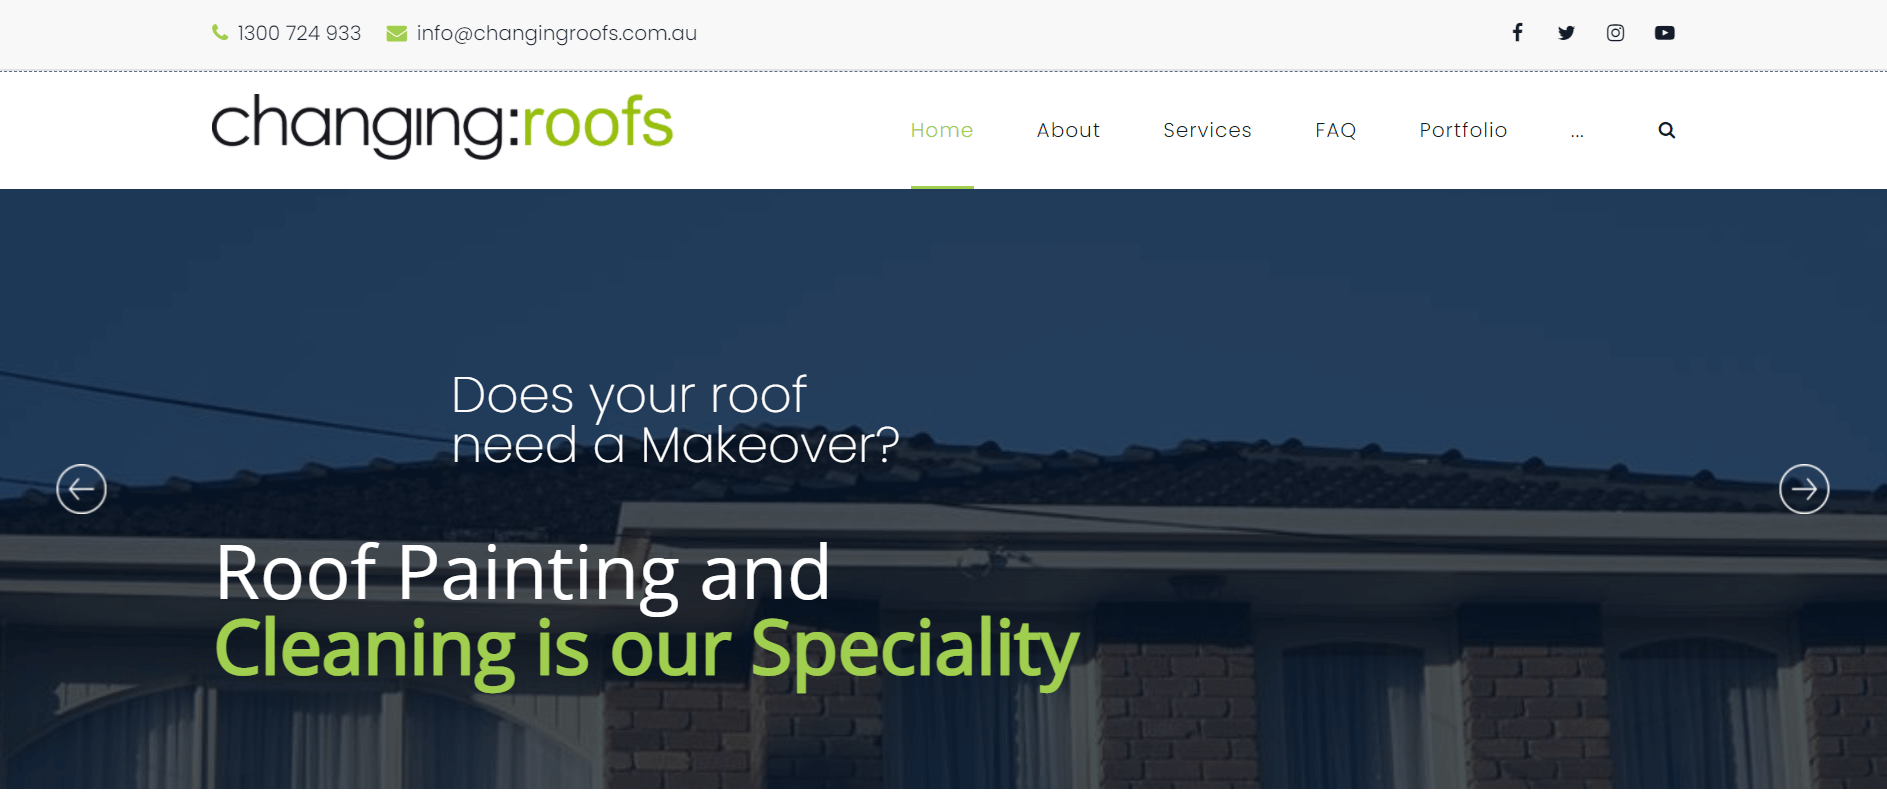 changing roofs